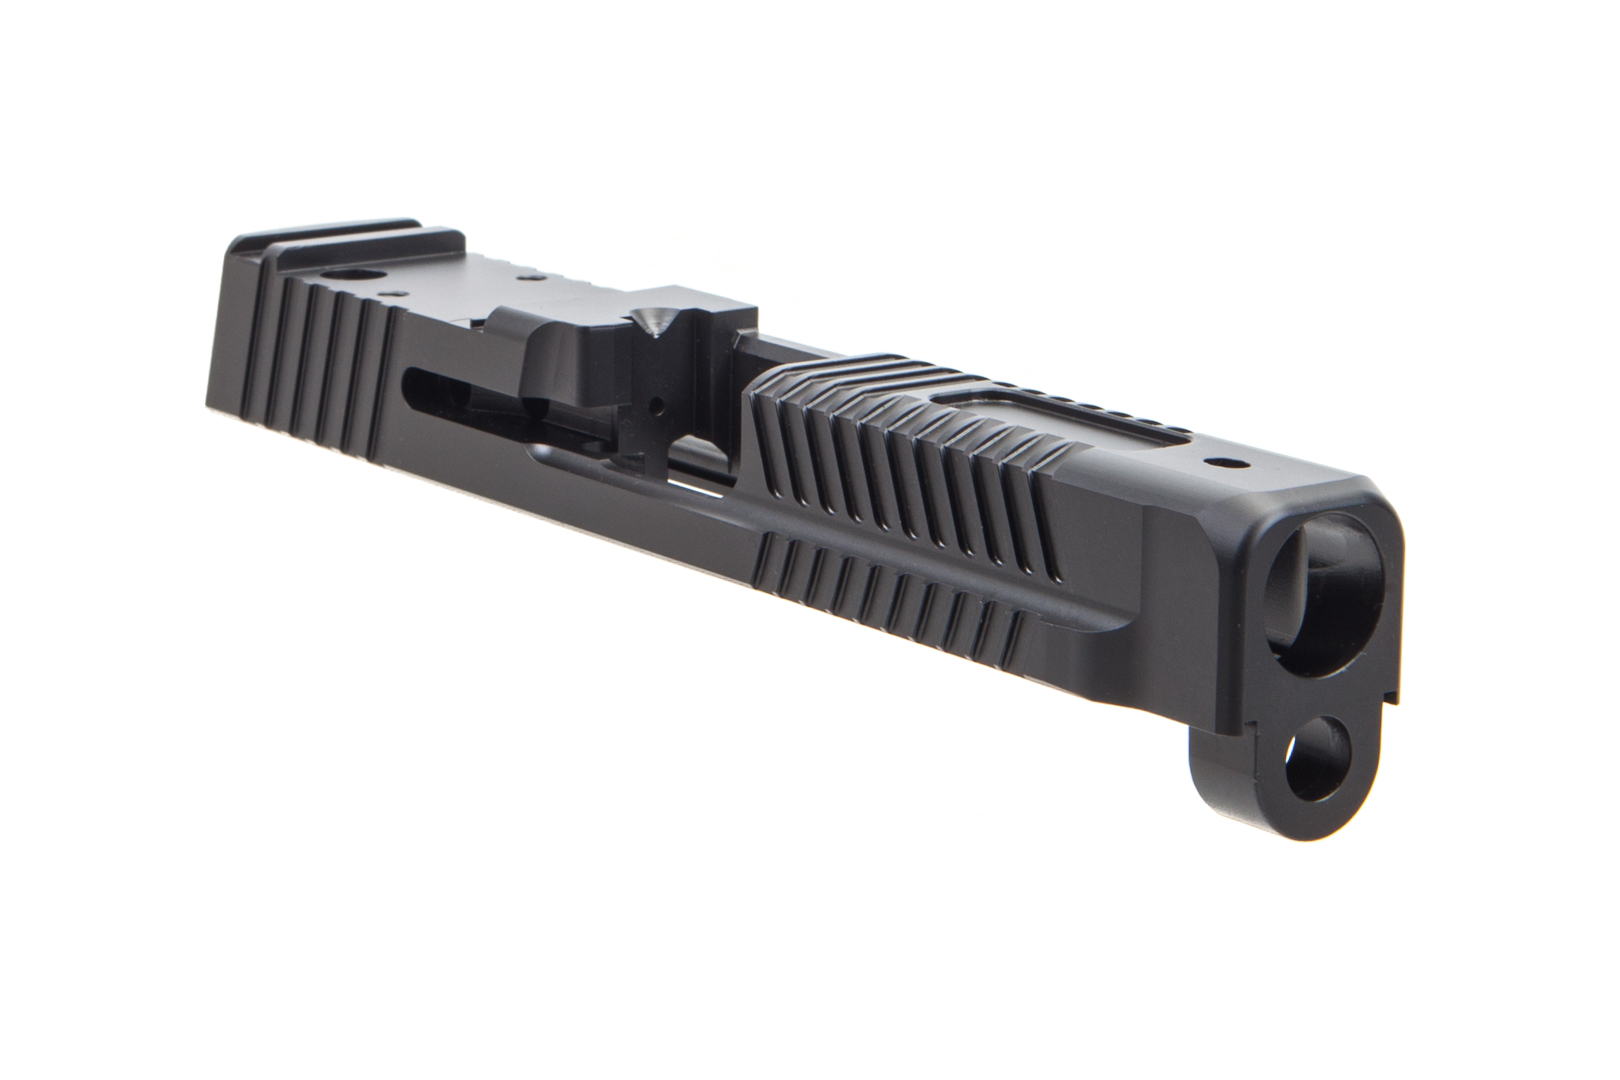 Faxon Firearms M&P Full Size Patriot Stripped Slide - DLC Black